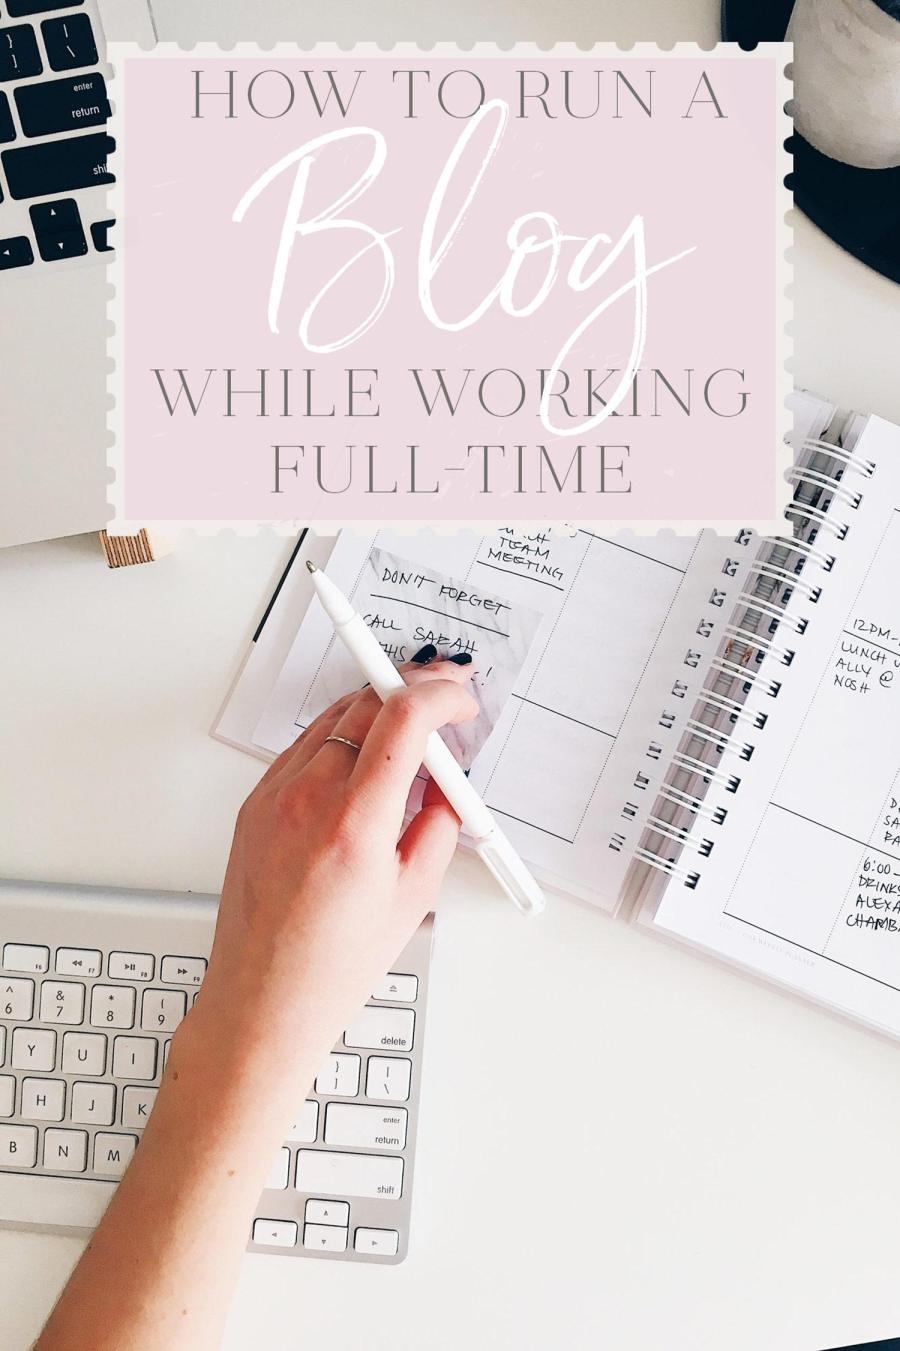 How to Run a Blog While Working Full-Time